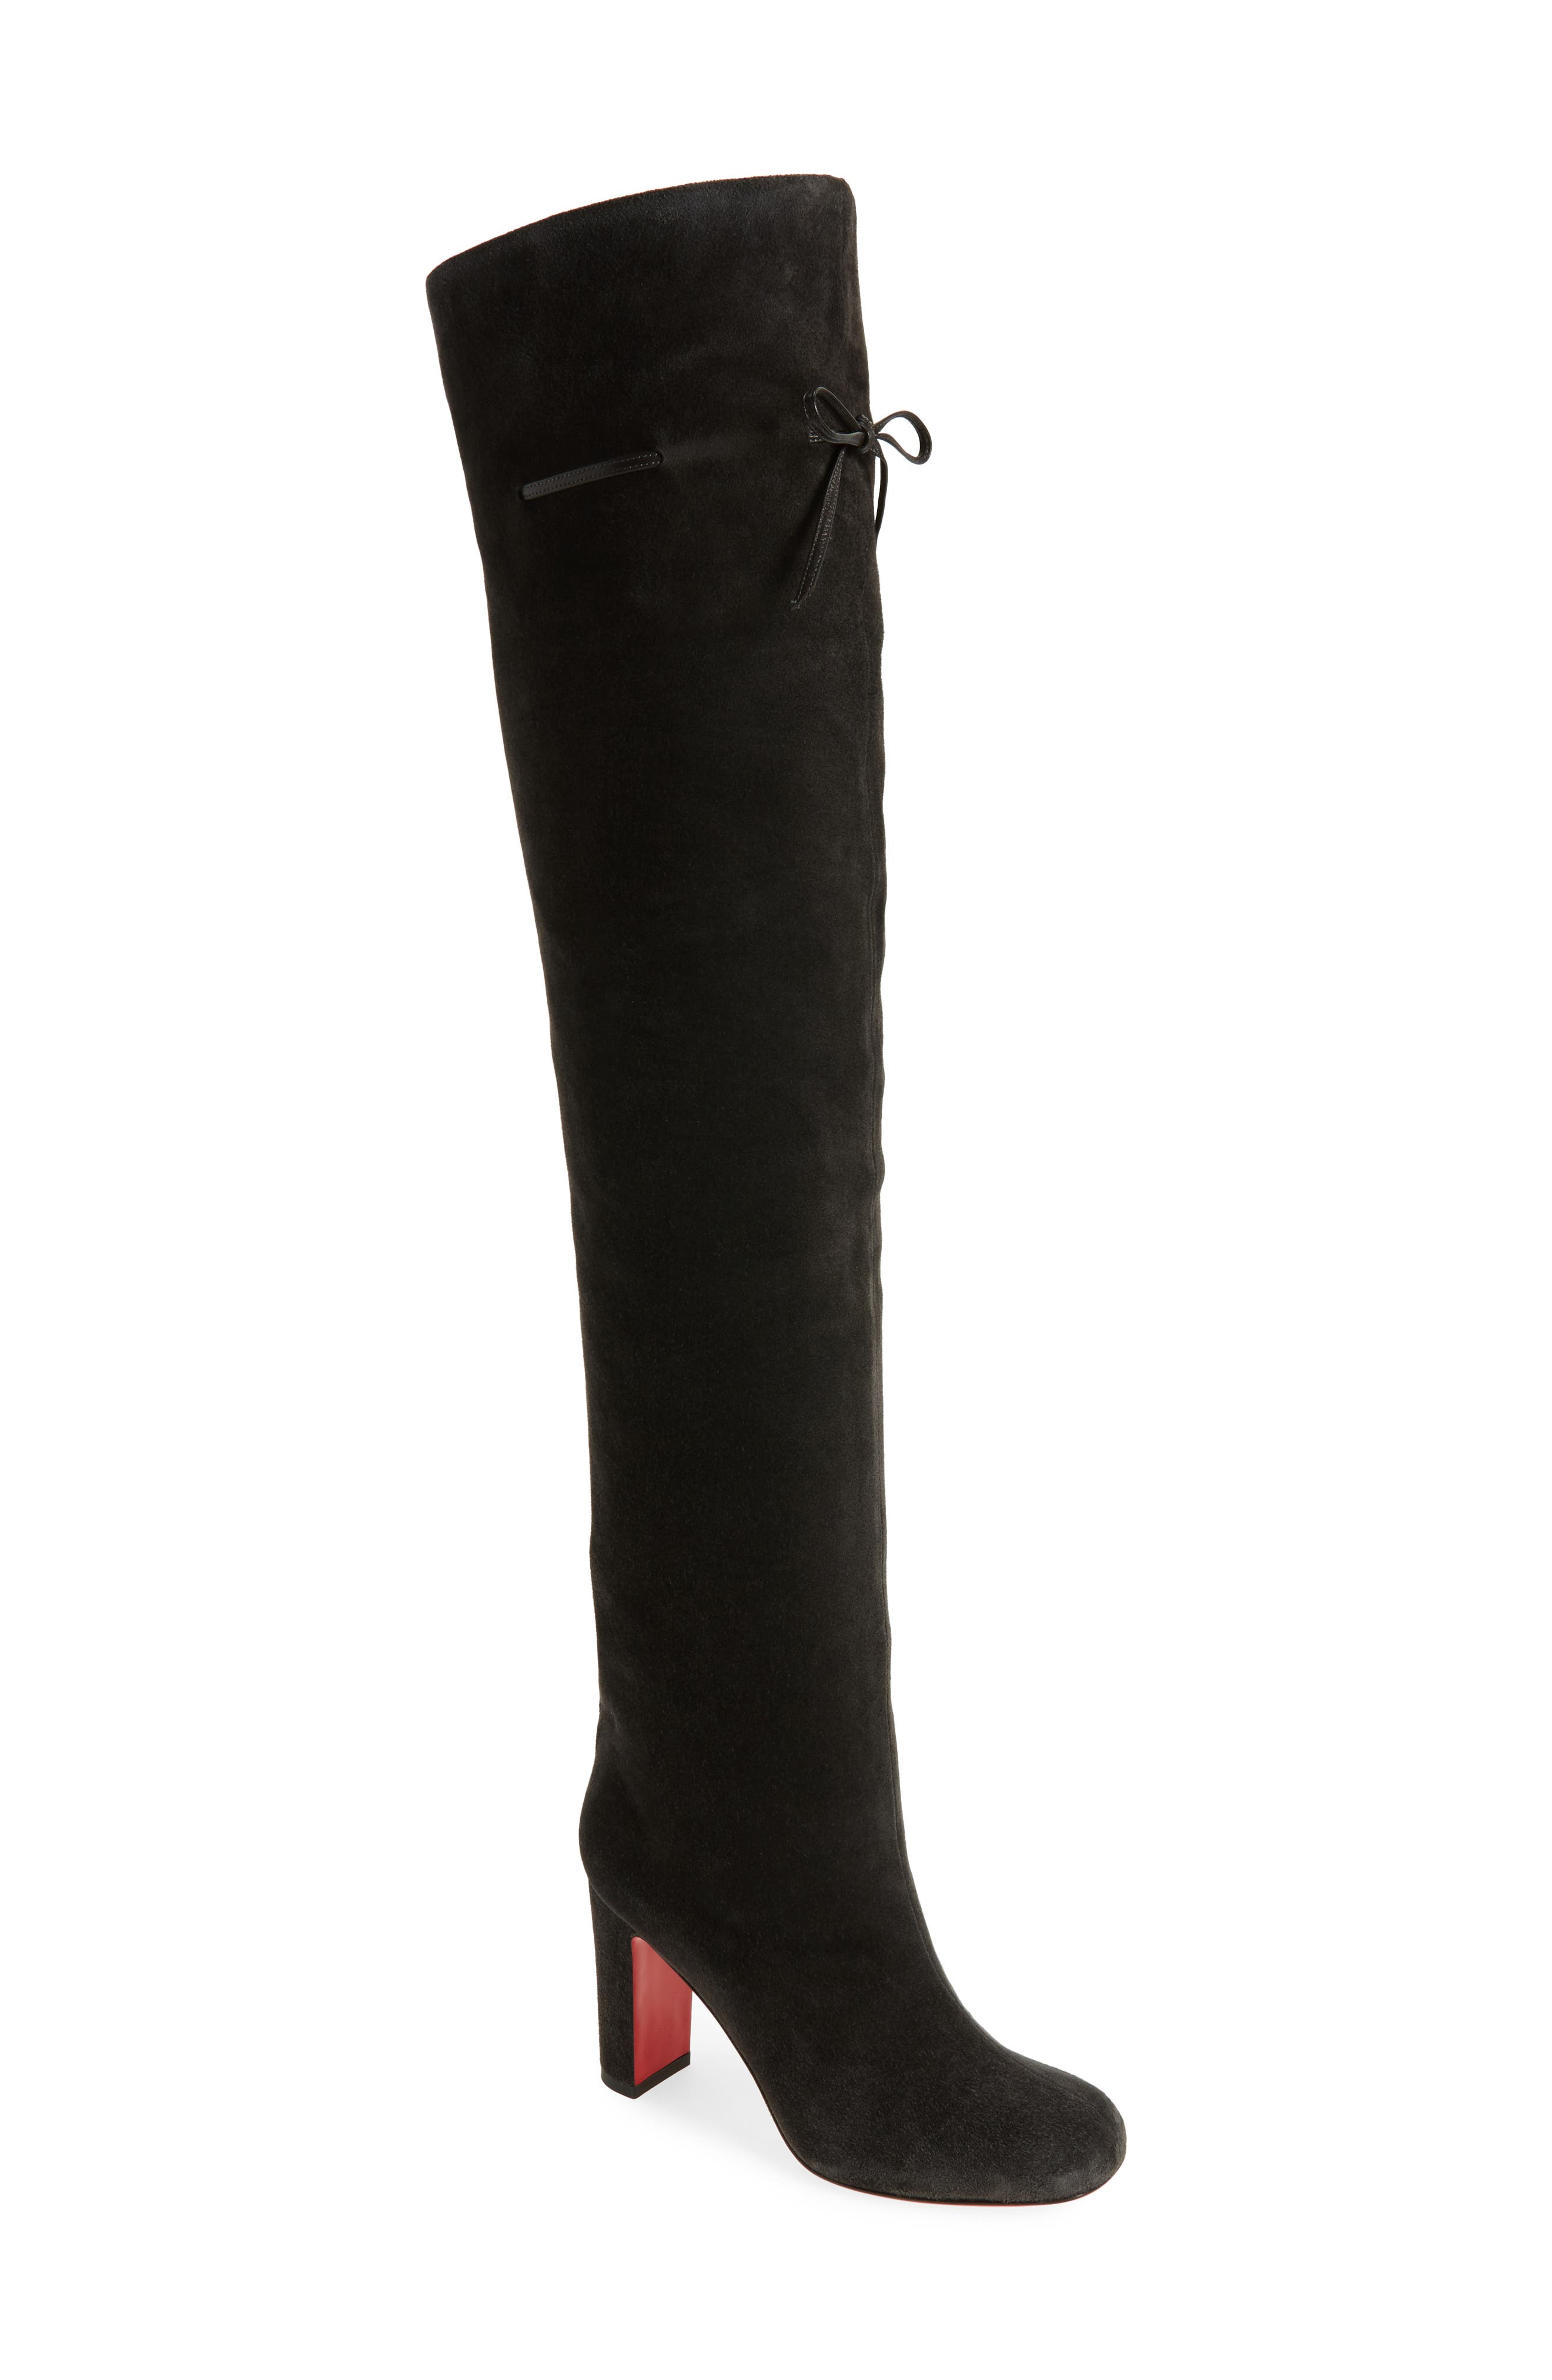 Alta Gant Over the Knee Boot,                         Main,                         color, 022